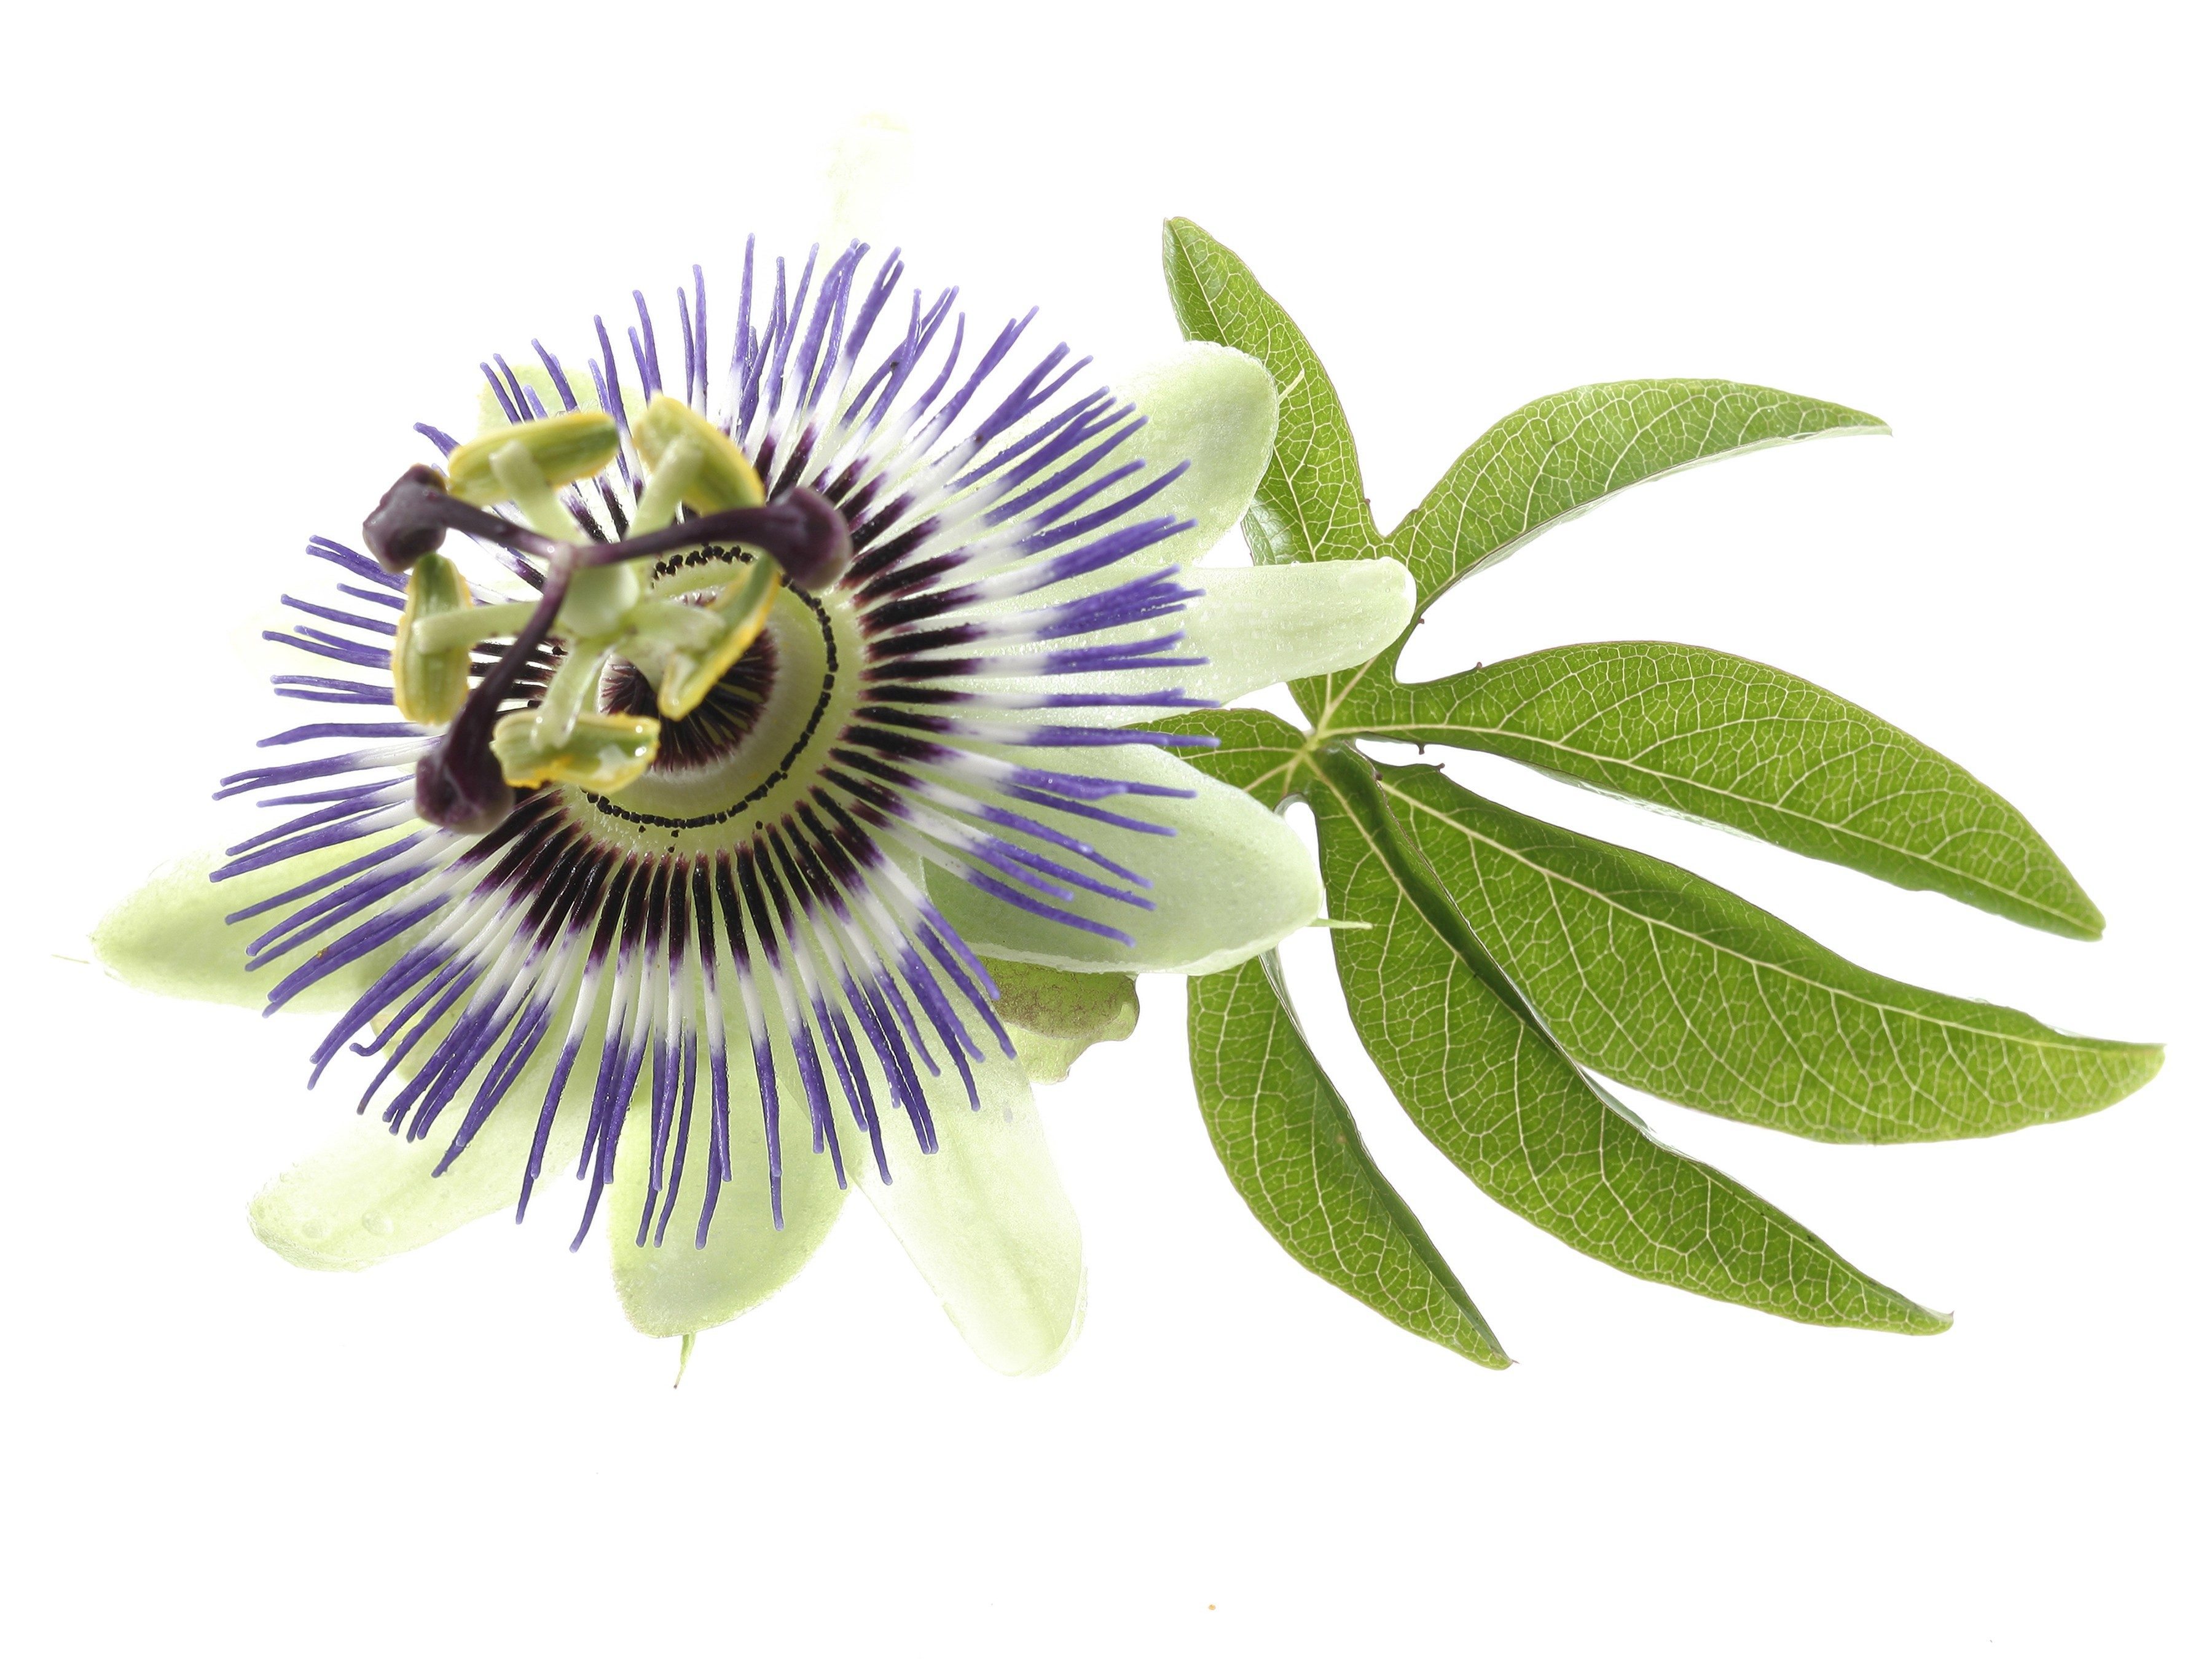 4. Passionflower